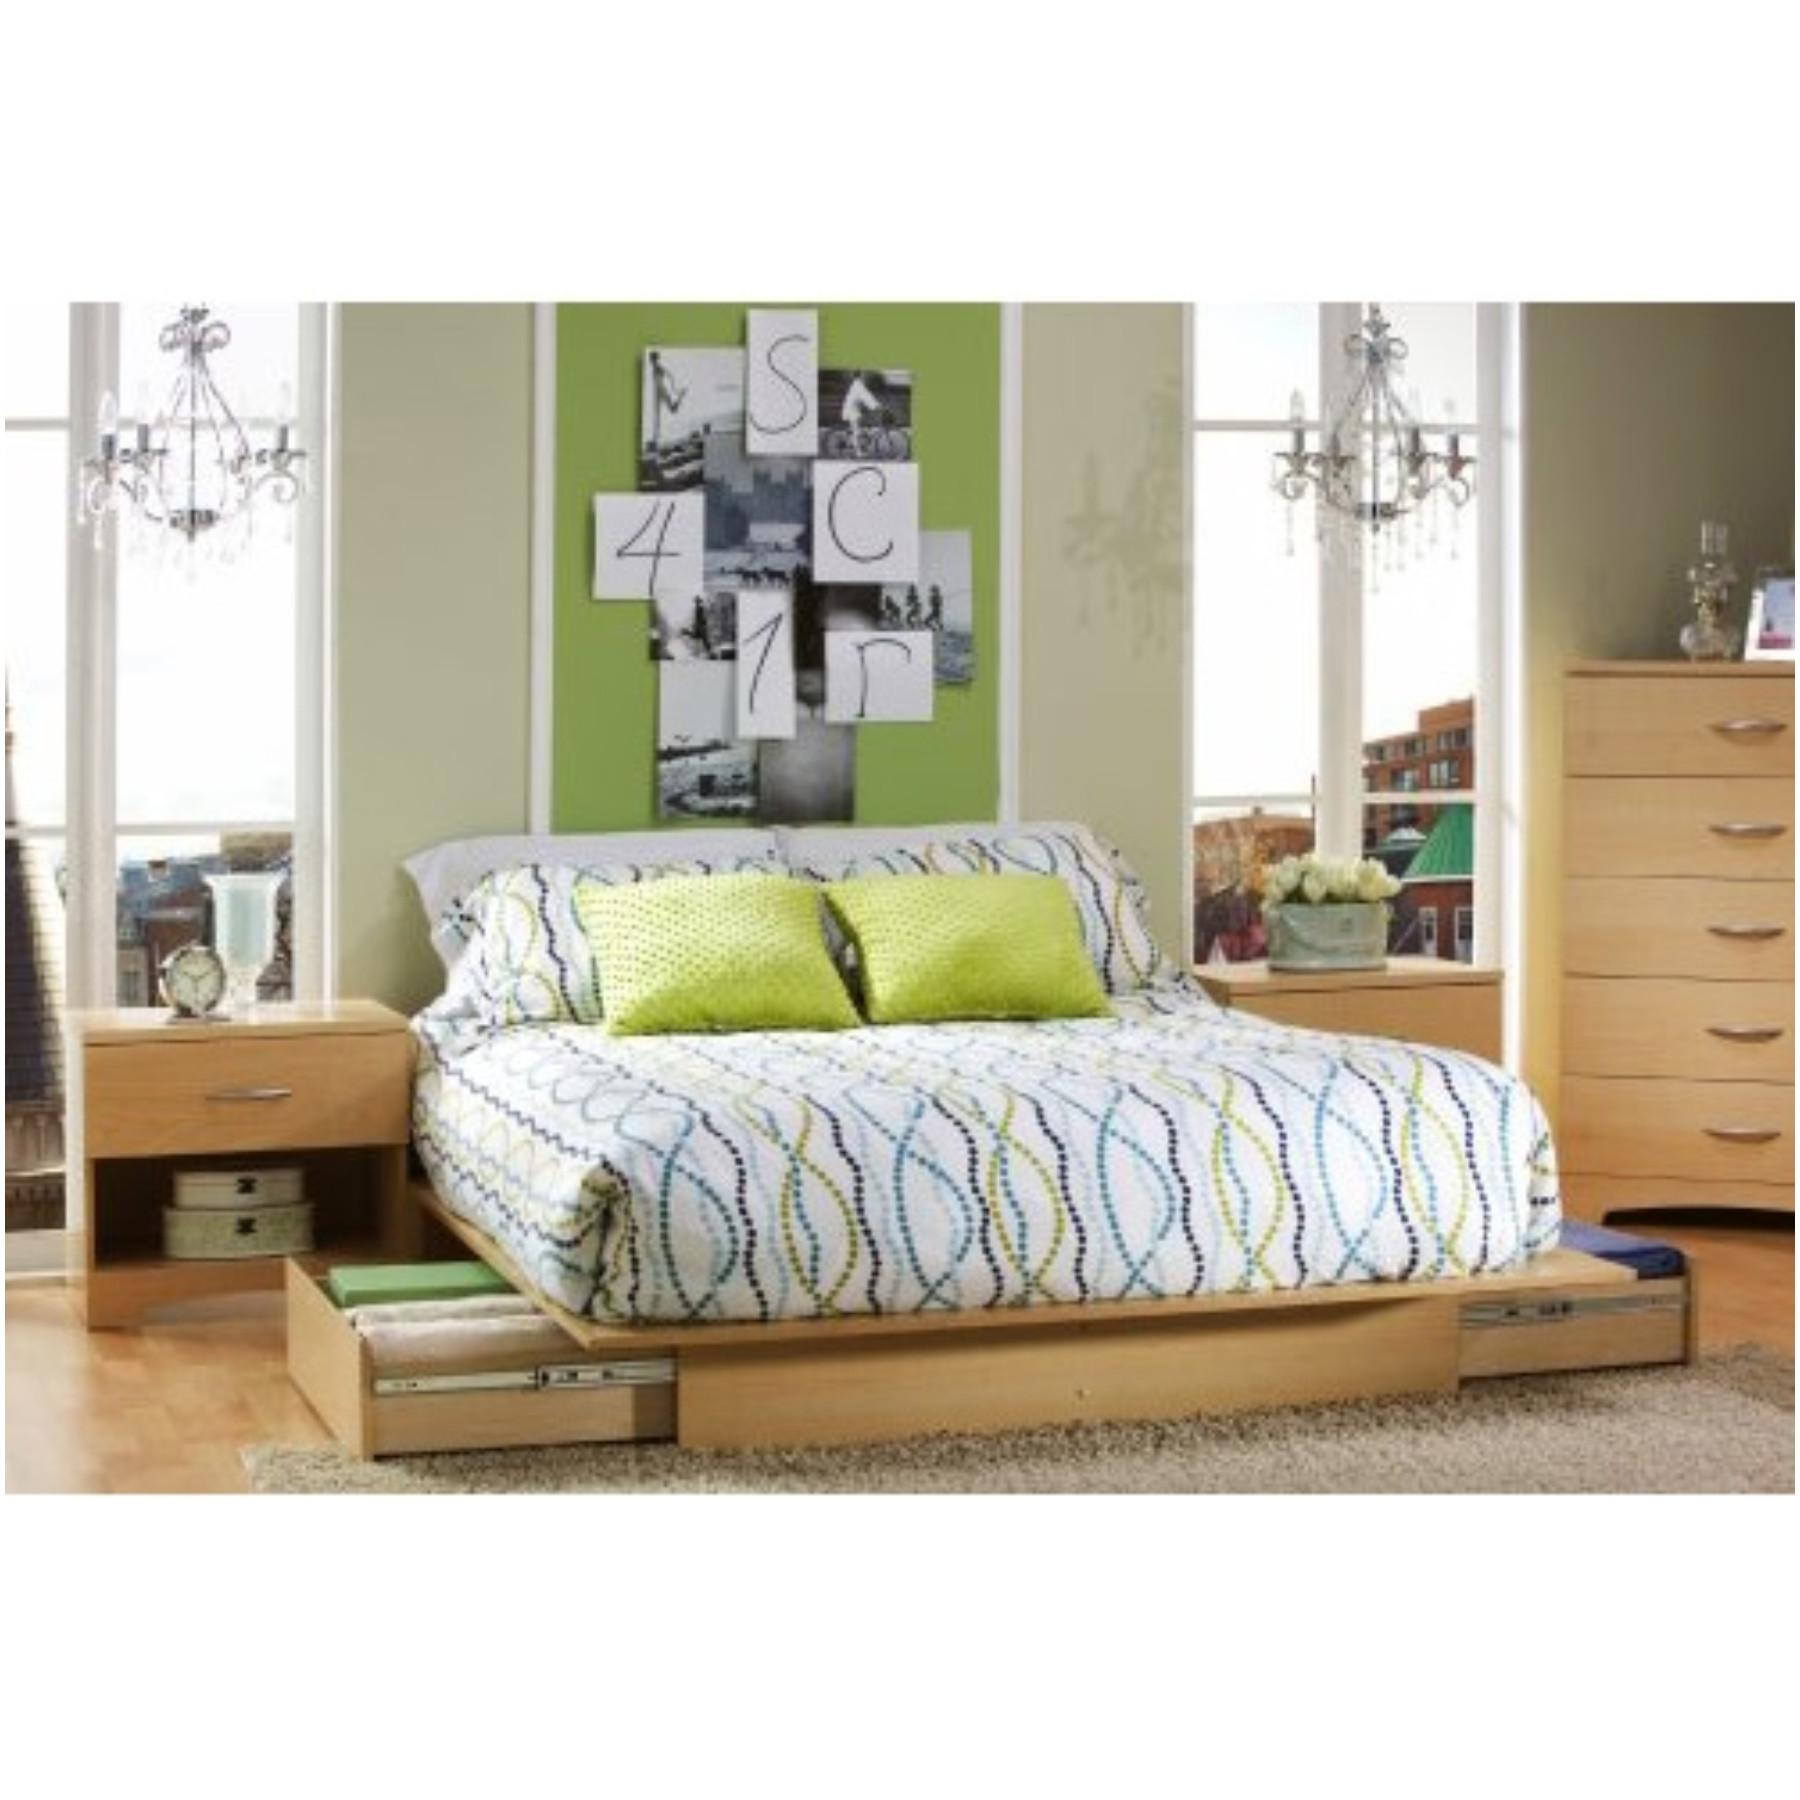 Furniture Gray Upholstered Queen Bed Frame Lift